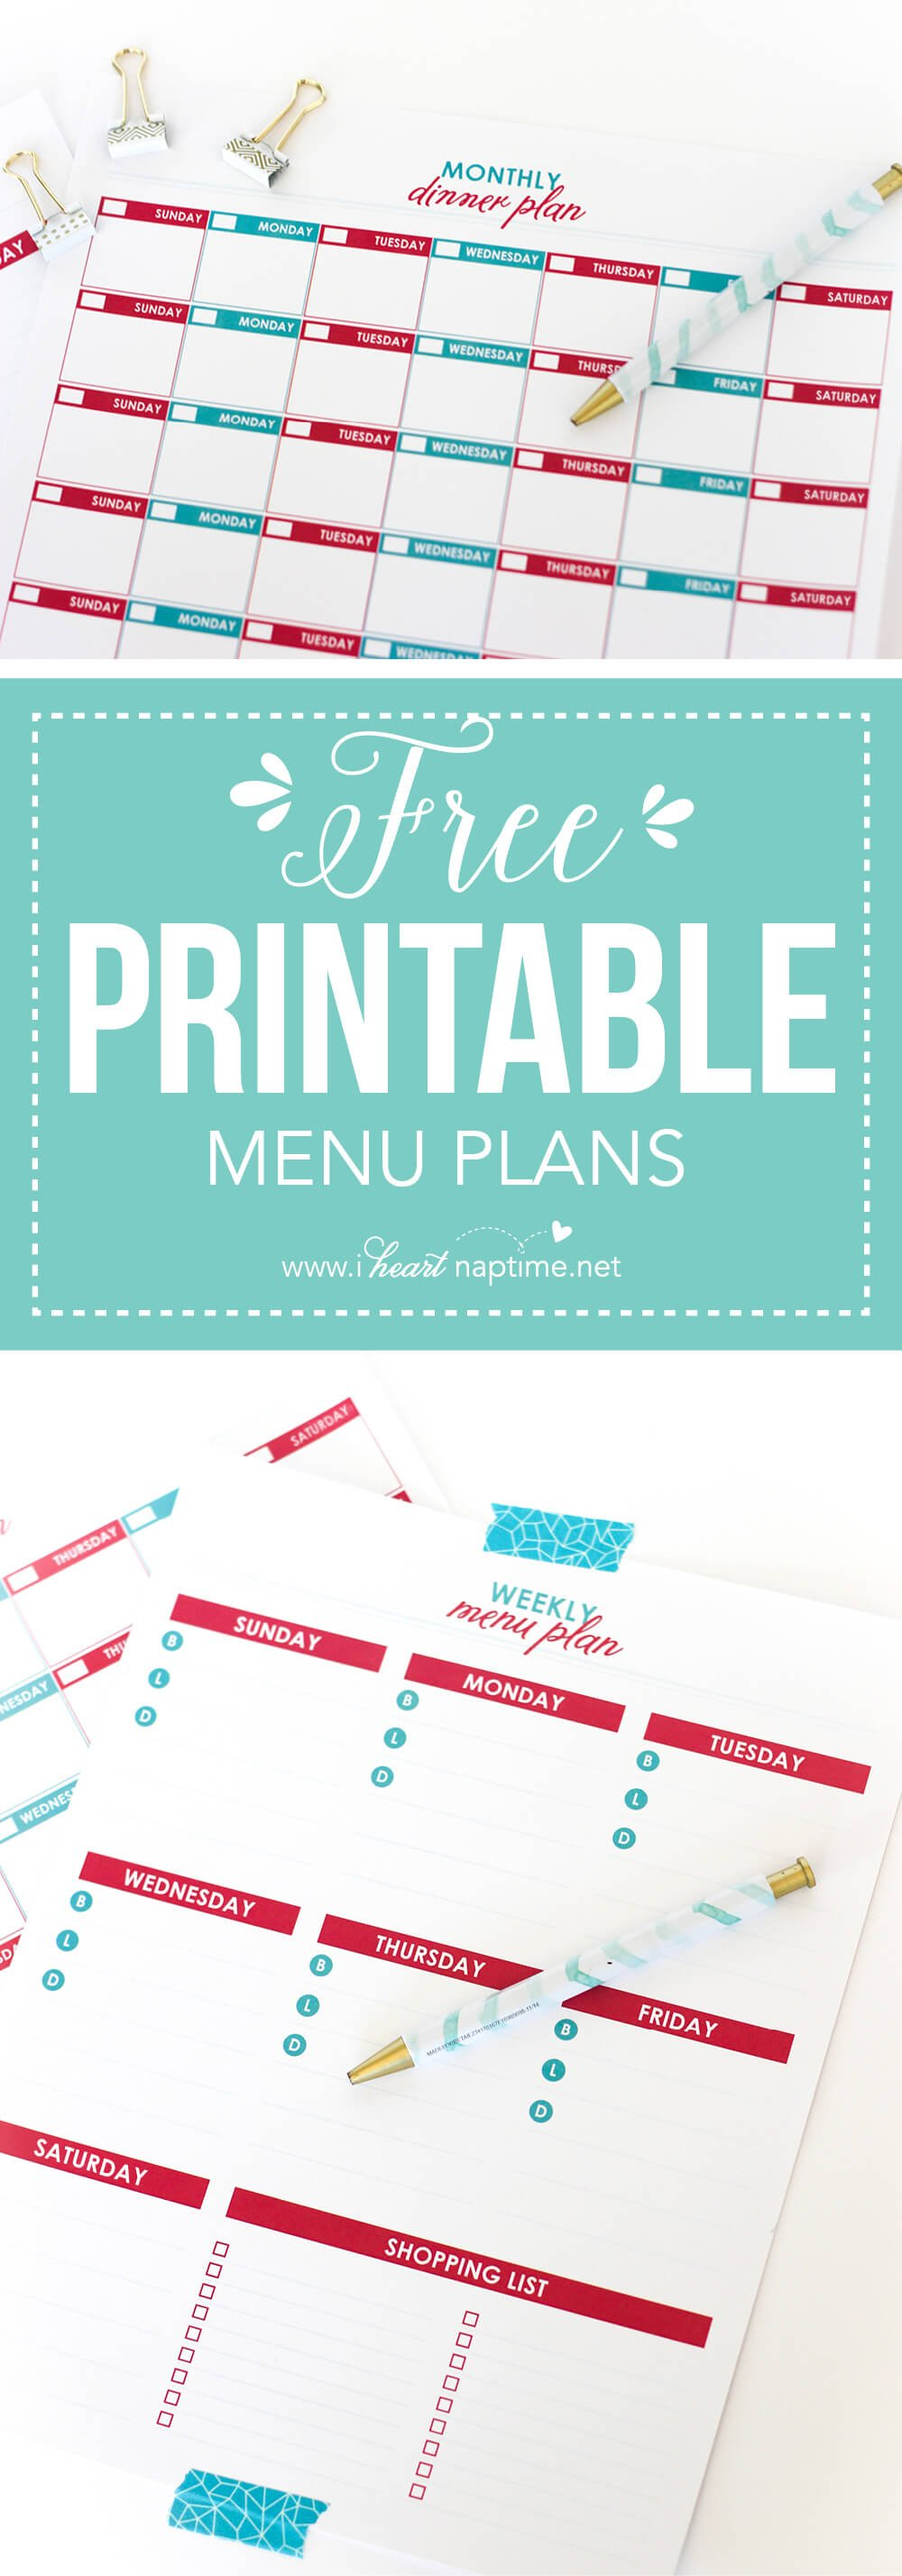 Organize your meal planning schedule with these Printable Menu Plans! You can schedule by month or by week with these pretty sheets!